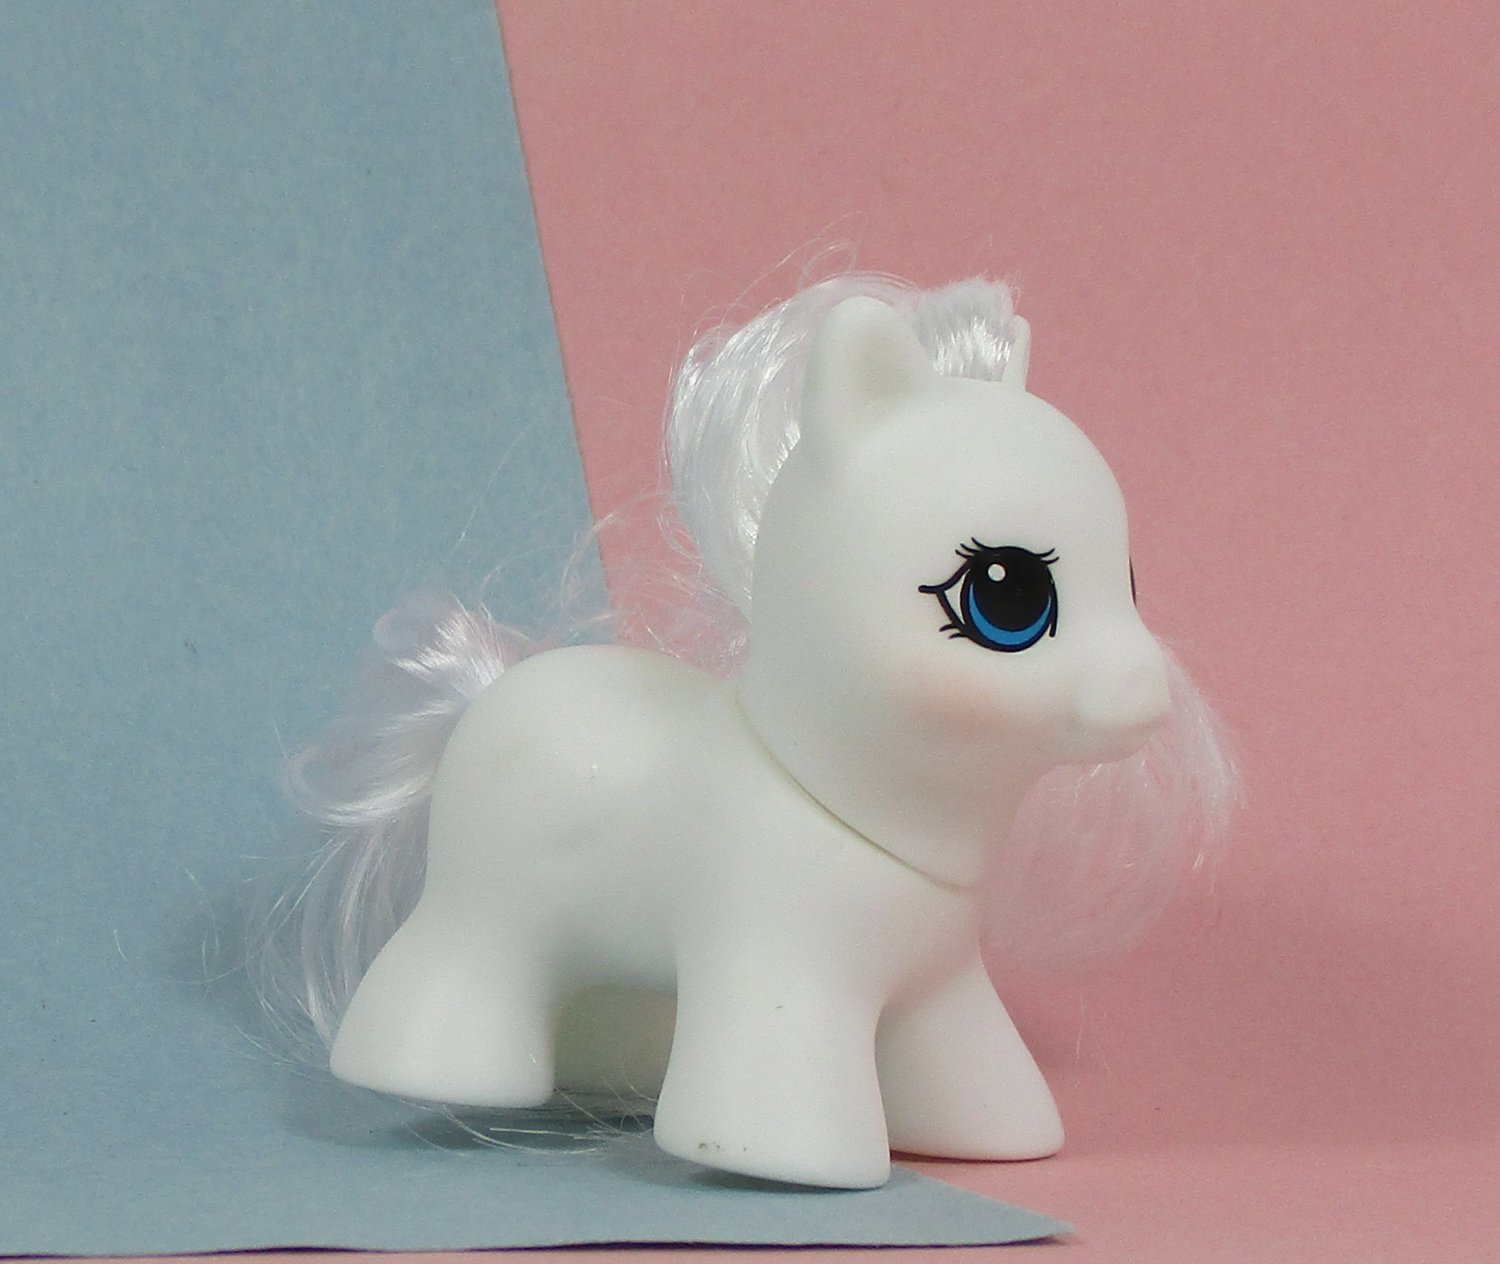 Little Pony Baby BLANK Tiny HQG1C Teeny White Hair Classic 1980s Style Cute 2 Inch Toy Customization